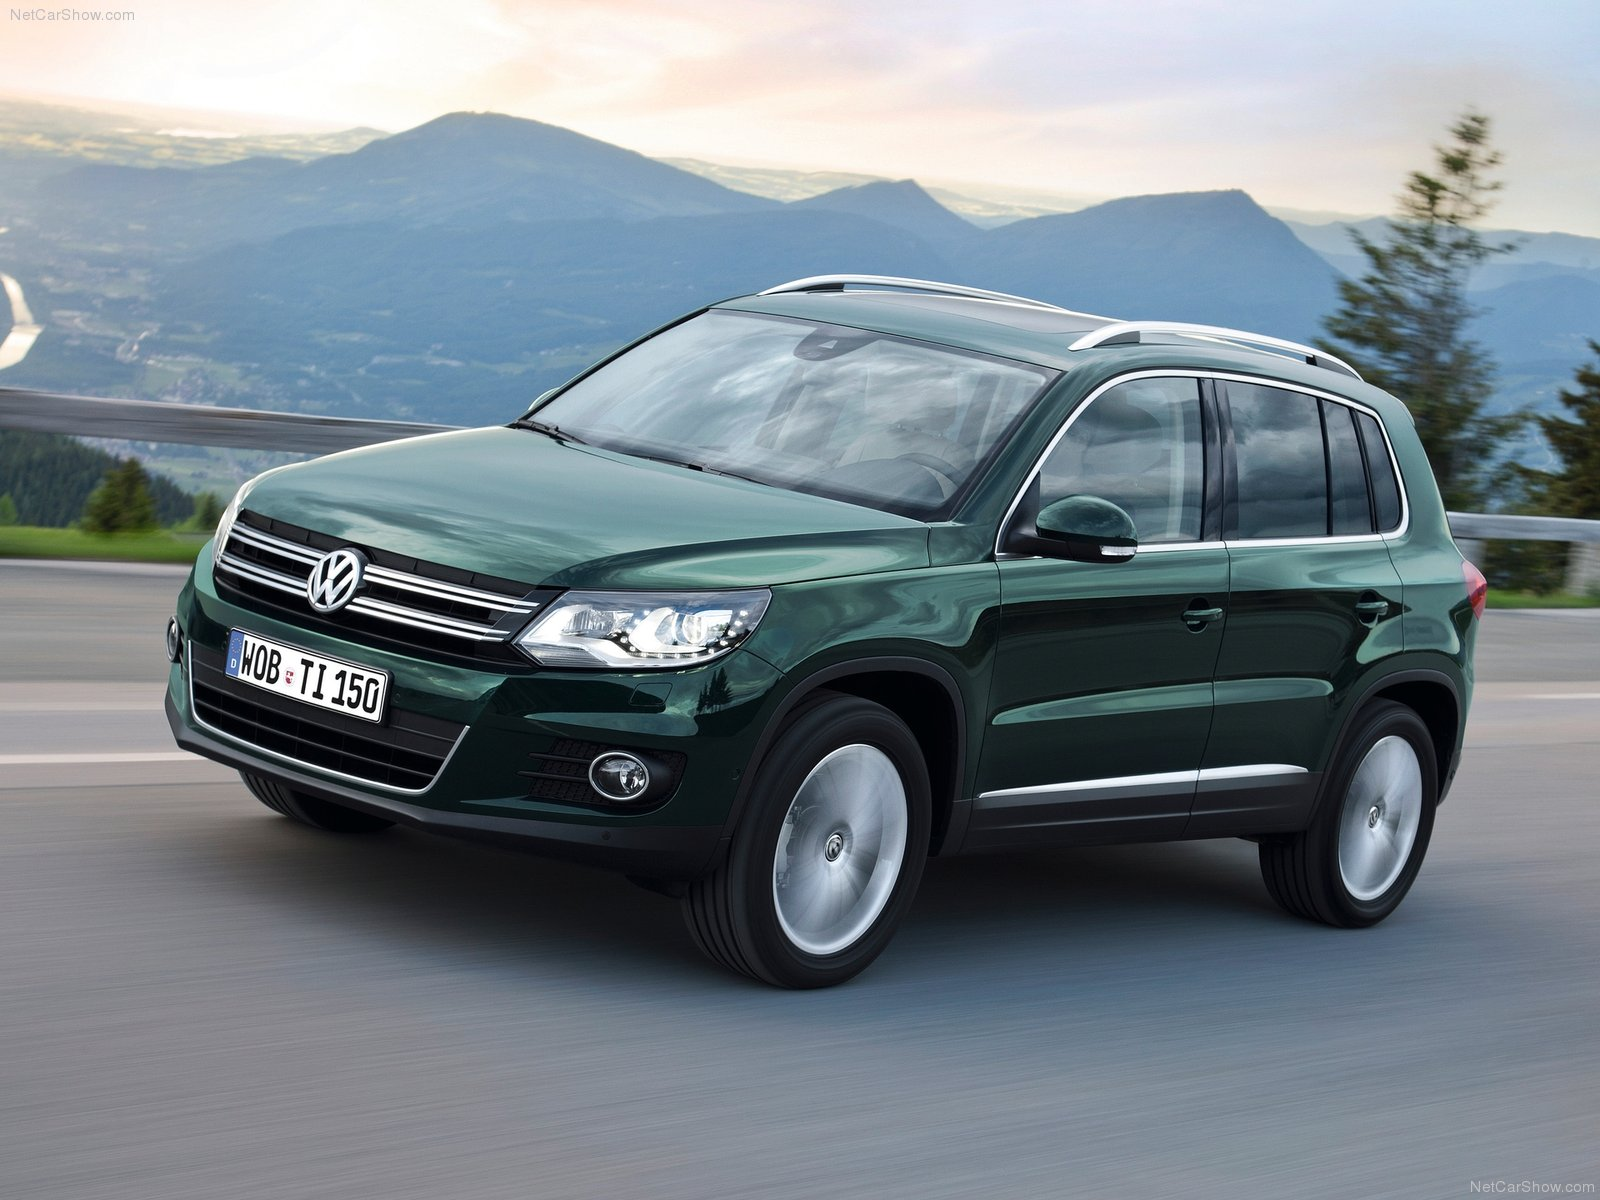 volkswagen tiguan essais fiabilit avis photos prix. Black Bedroom Furniture Sets. Home Design Ideas